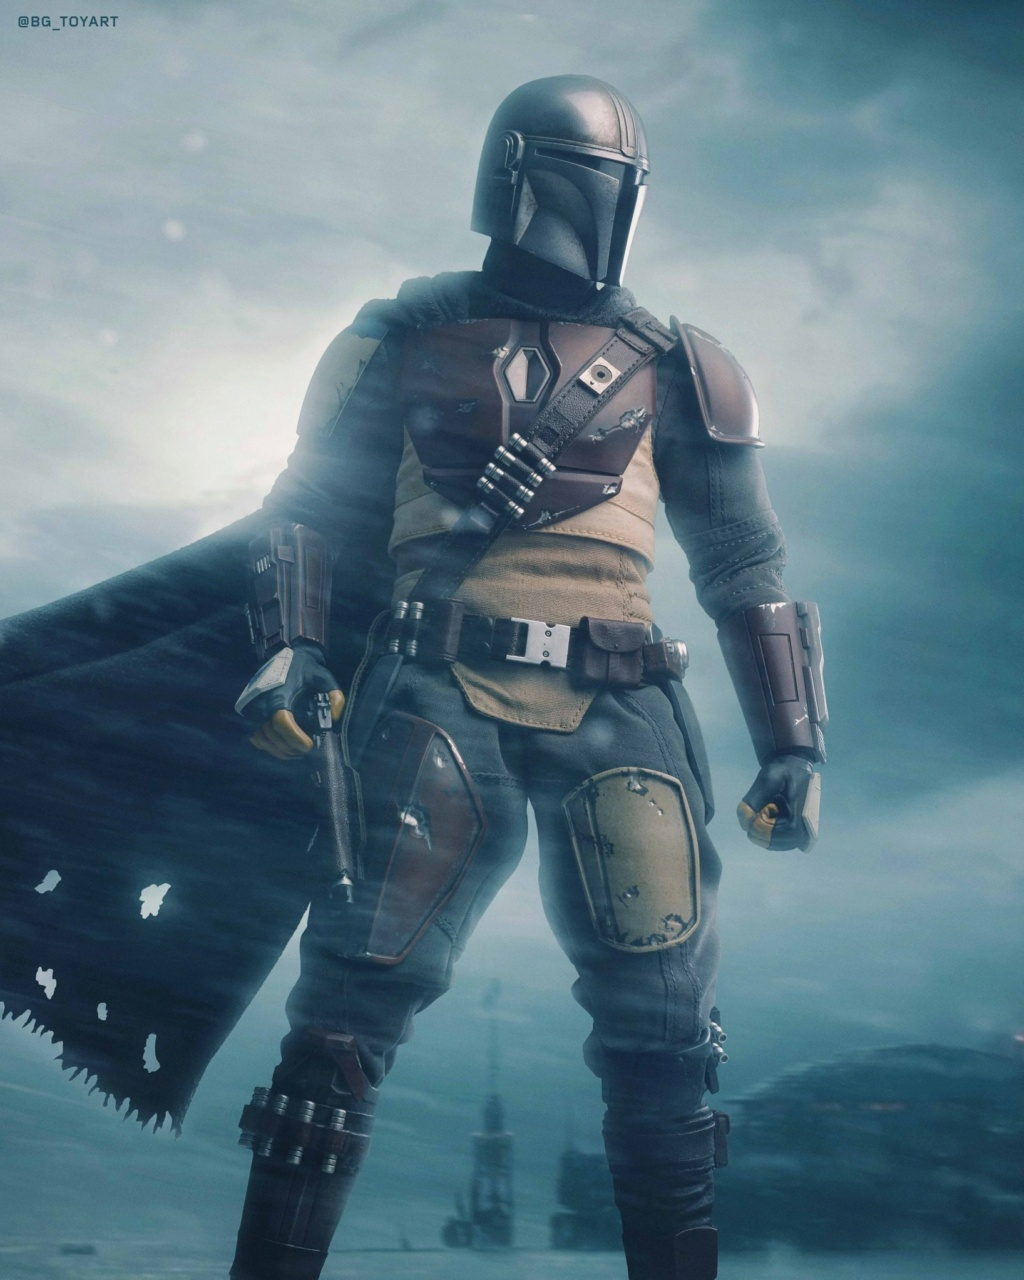 StarWars - NEW PRODUCT: HOT TOYS: THE MANDALORIAN -- THE MANDALORIAN 1/6TH SCALE COLLECTIBLE FIGURE 13242